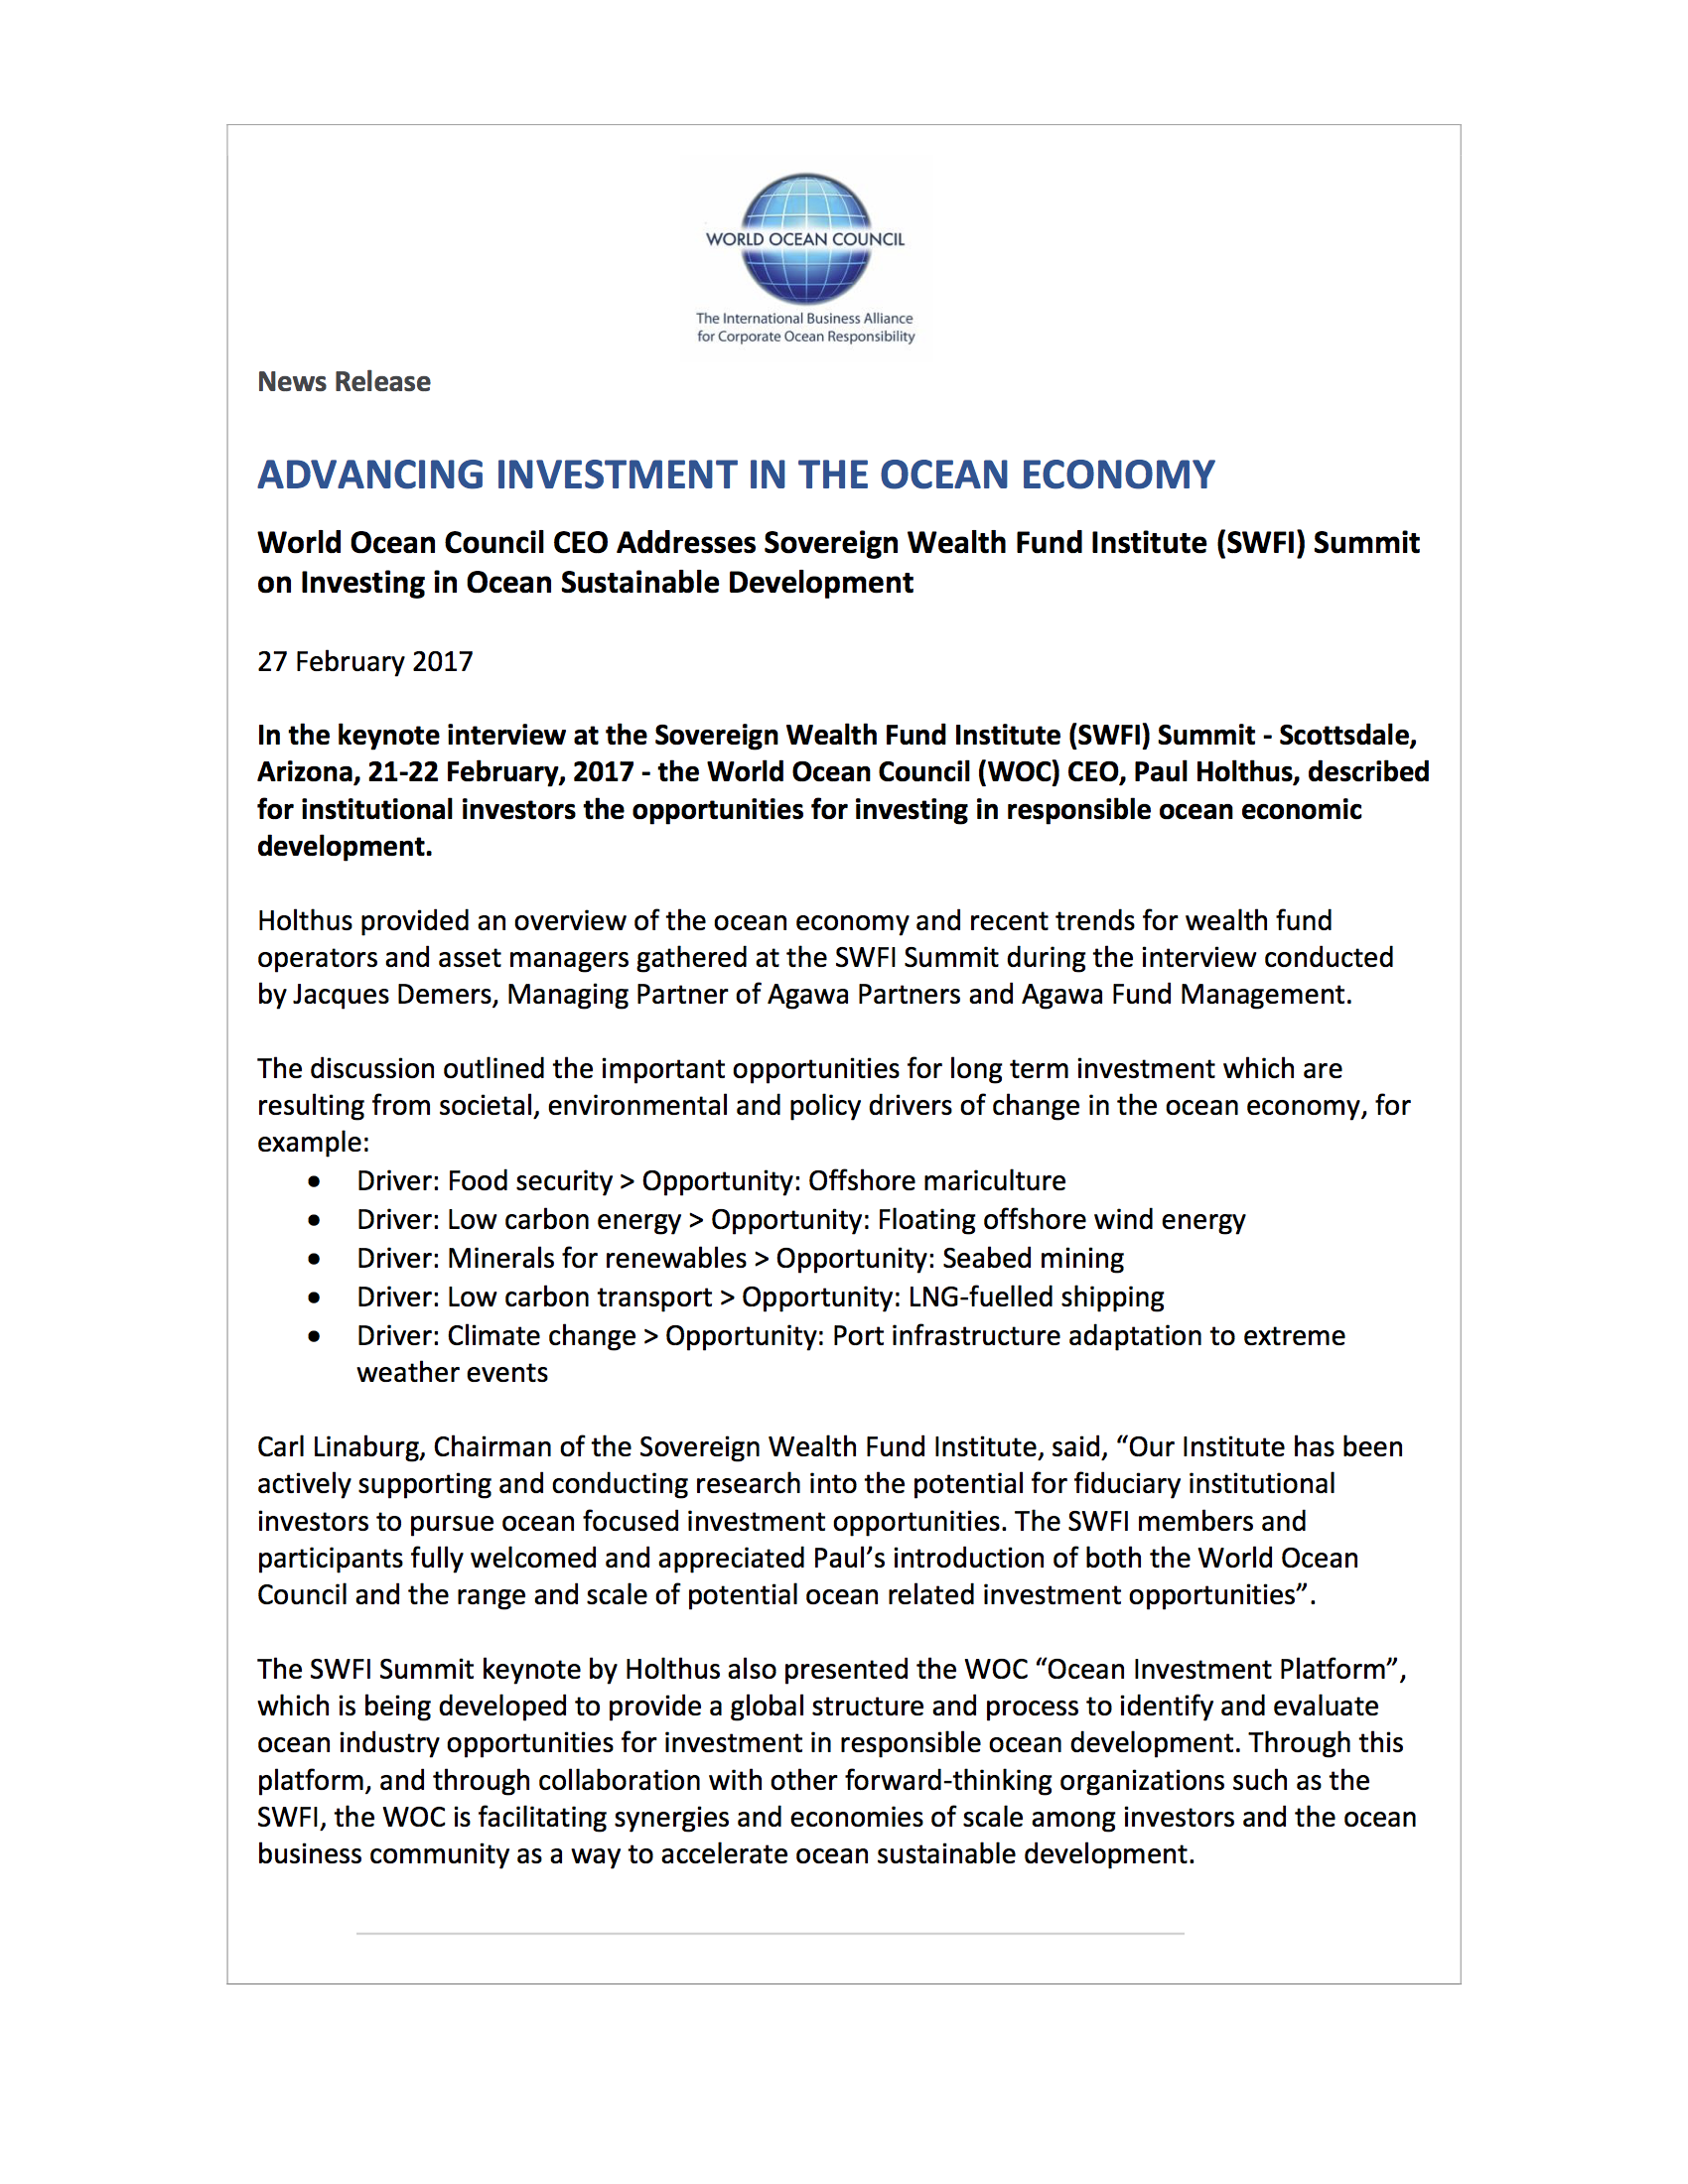 new releases world ocean council investing in the ocean economy and sustainable development 27 2017